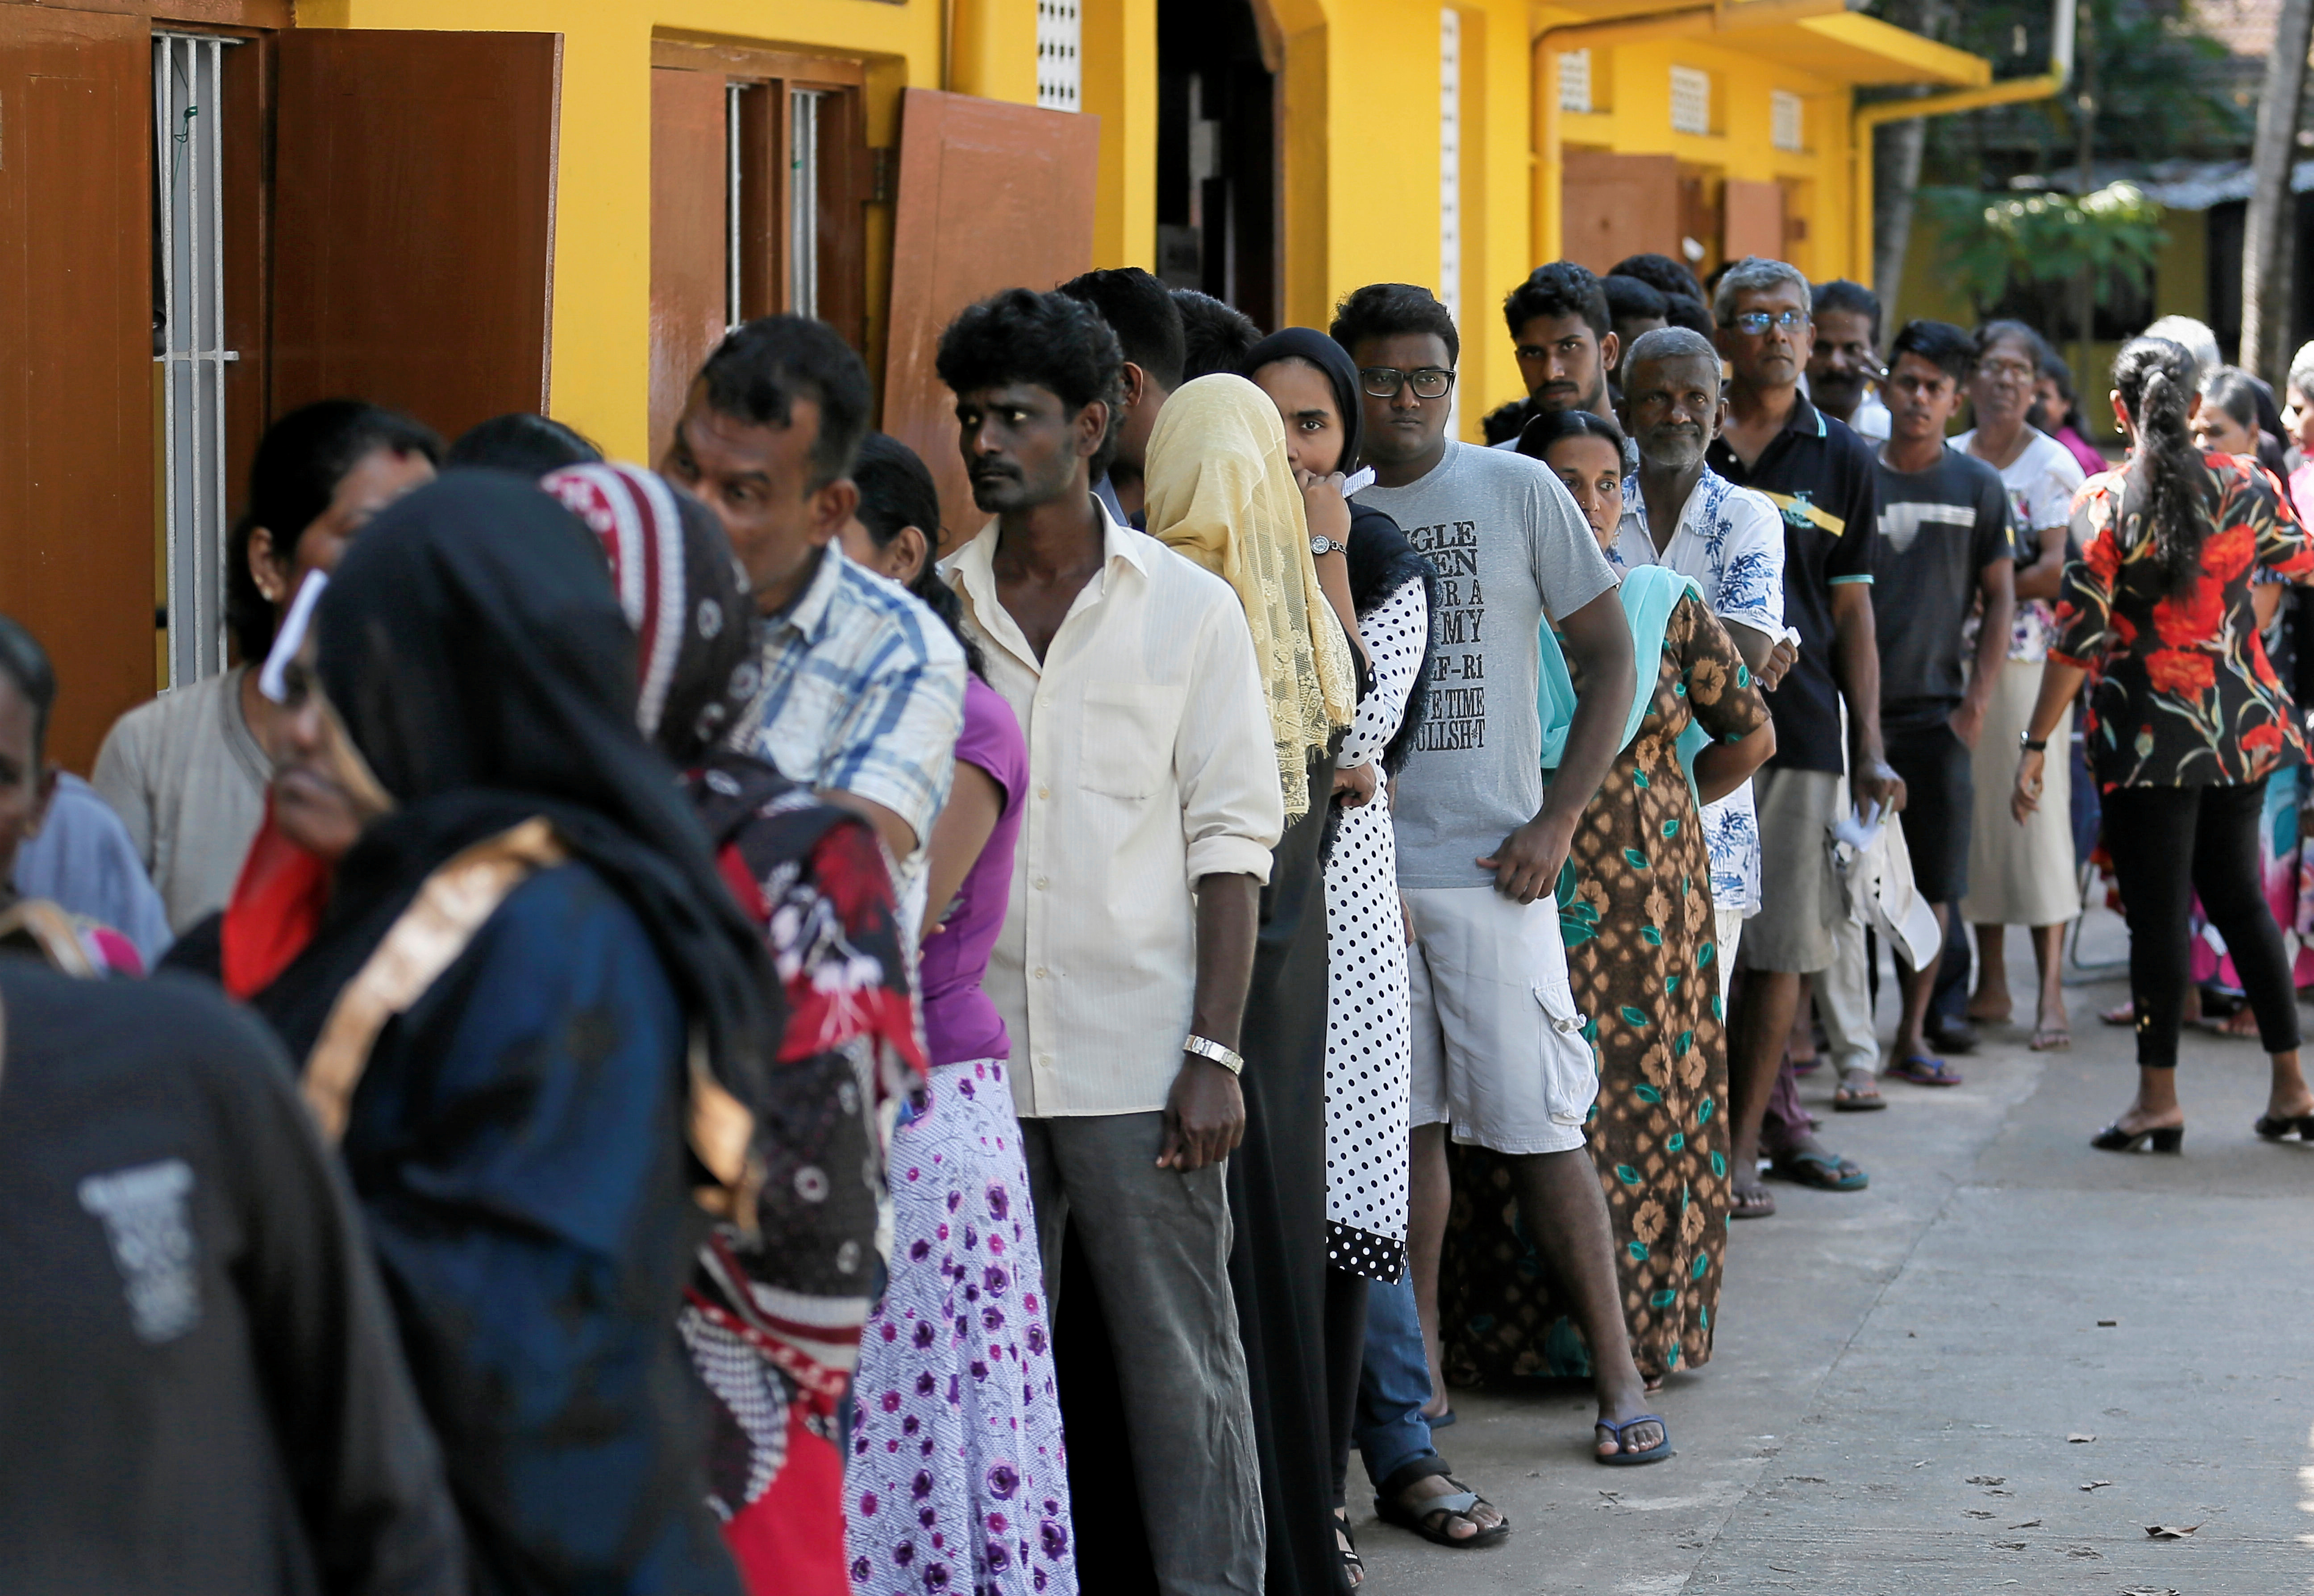 People stand in a line to cast their vote during the presidential election in Colombo, Sri Lanka November 16, 2019. REUTERS/Dinuka Liyanawatte